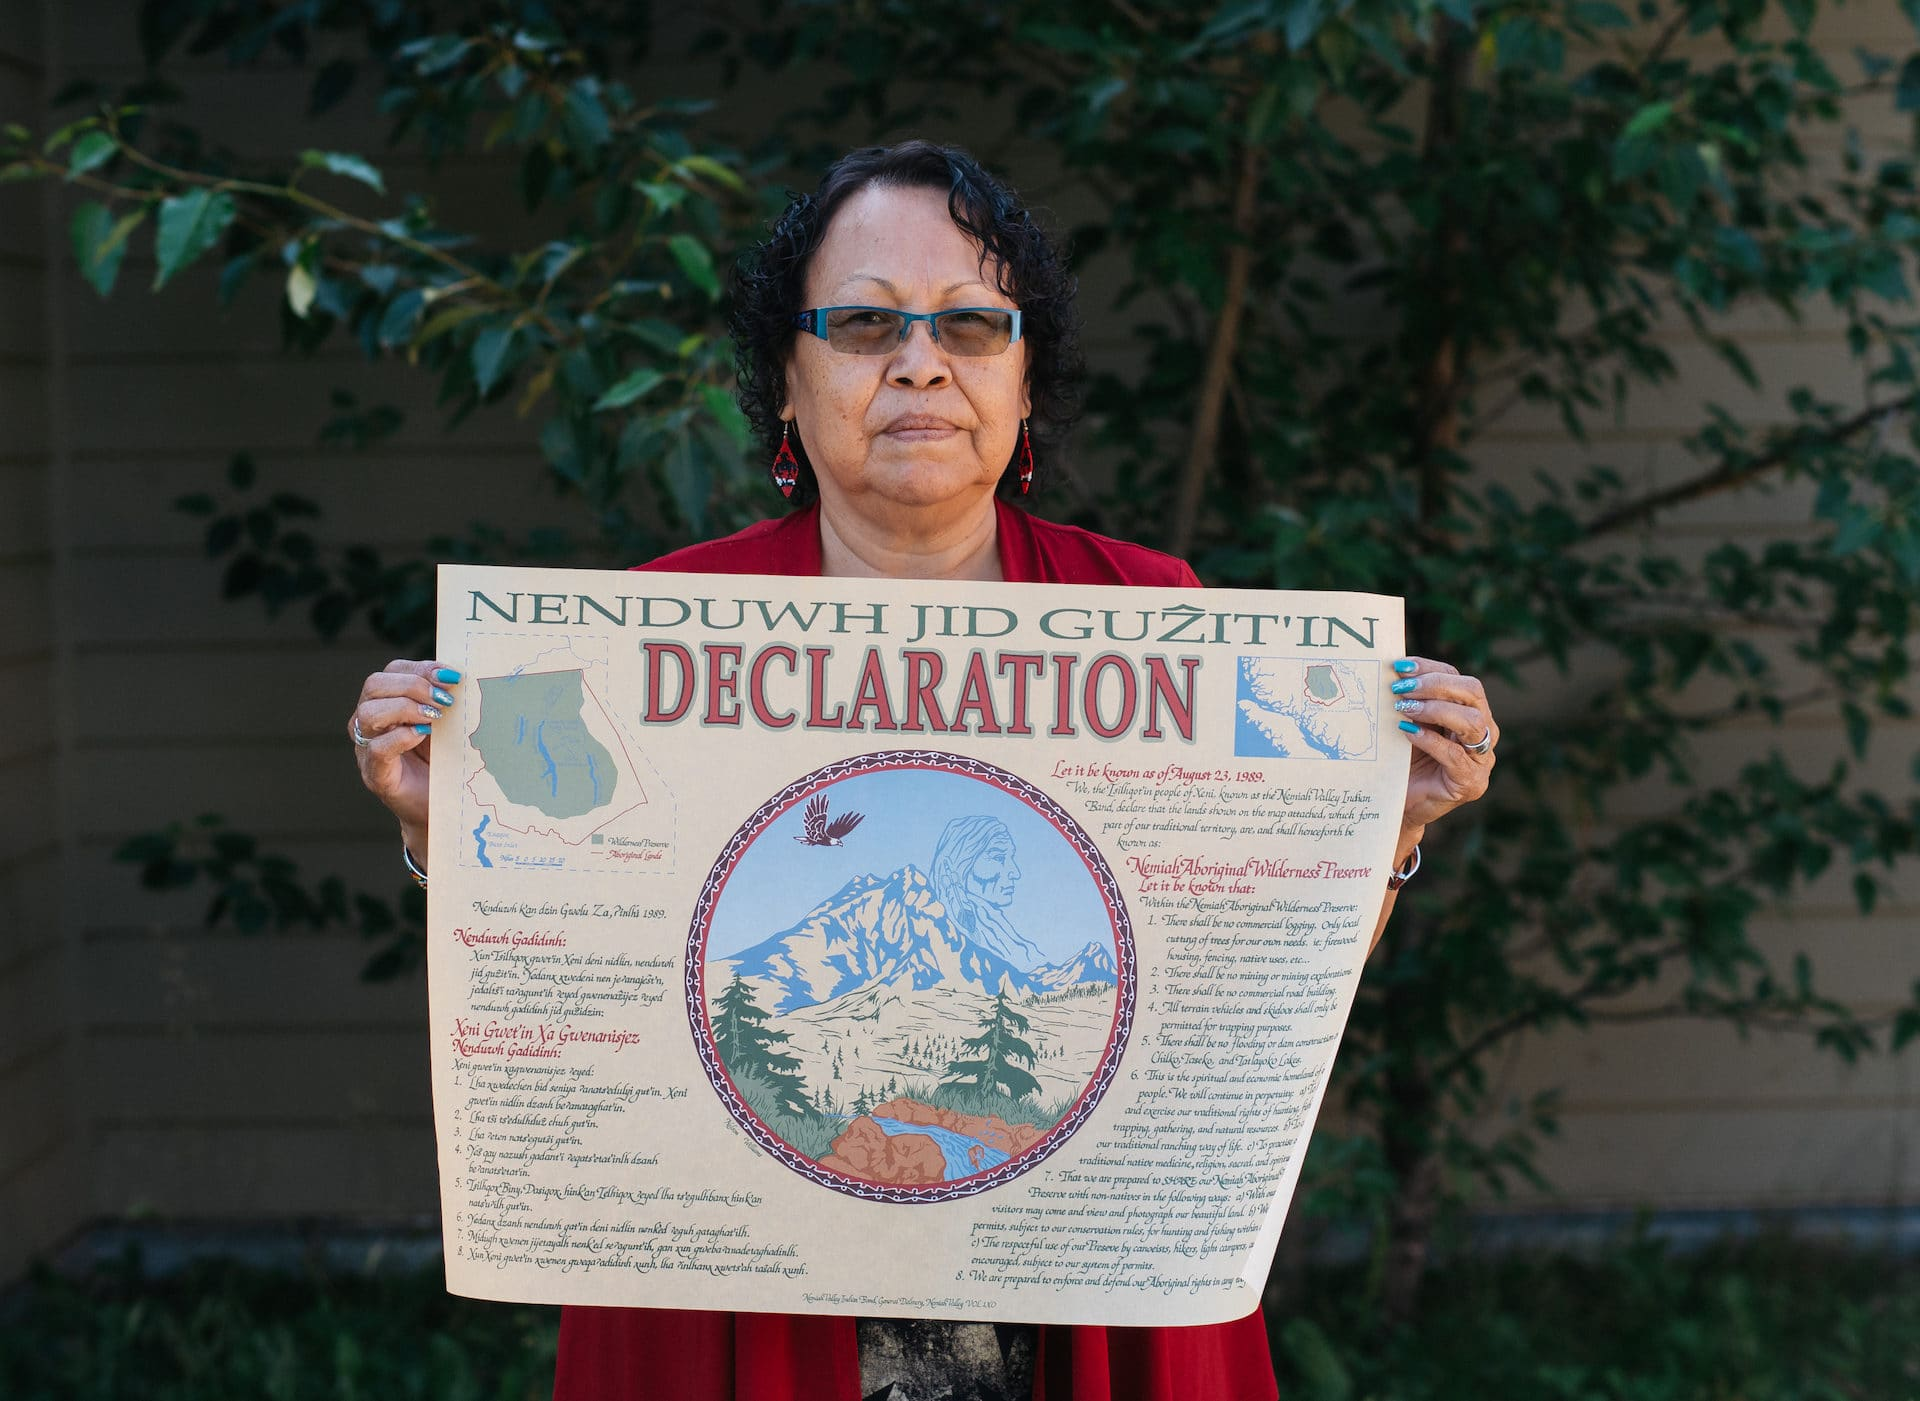 Annie Williams Xeni Gwet'in Nemiah Declaration of 1988 Louis Bockner Taseko New Prosperity Tsilhqot'in Nation